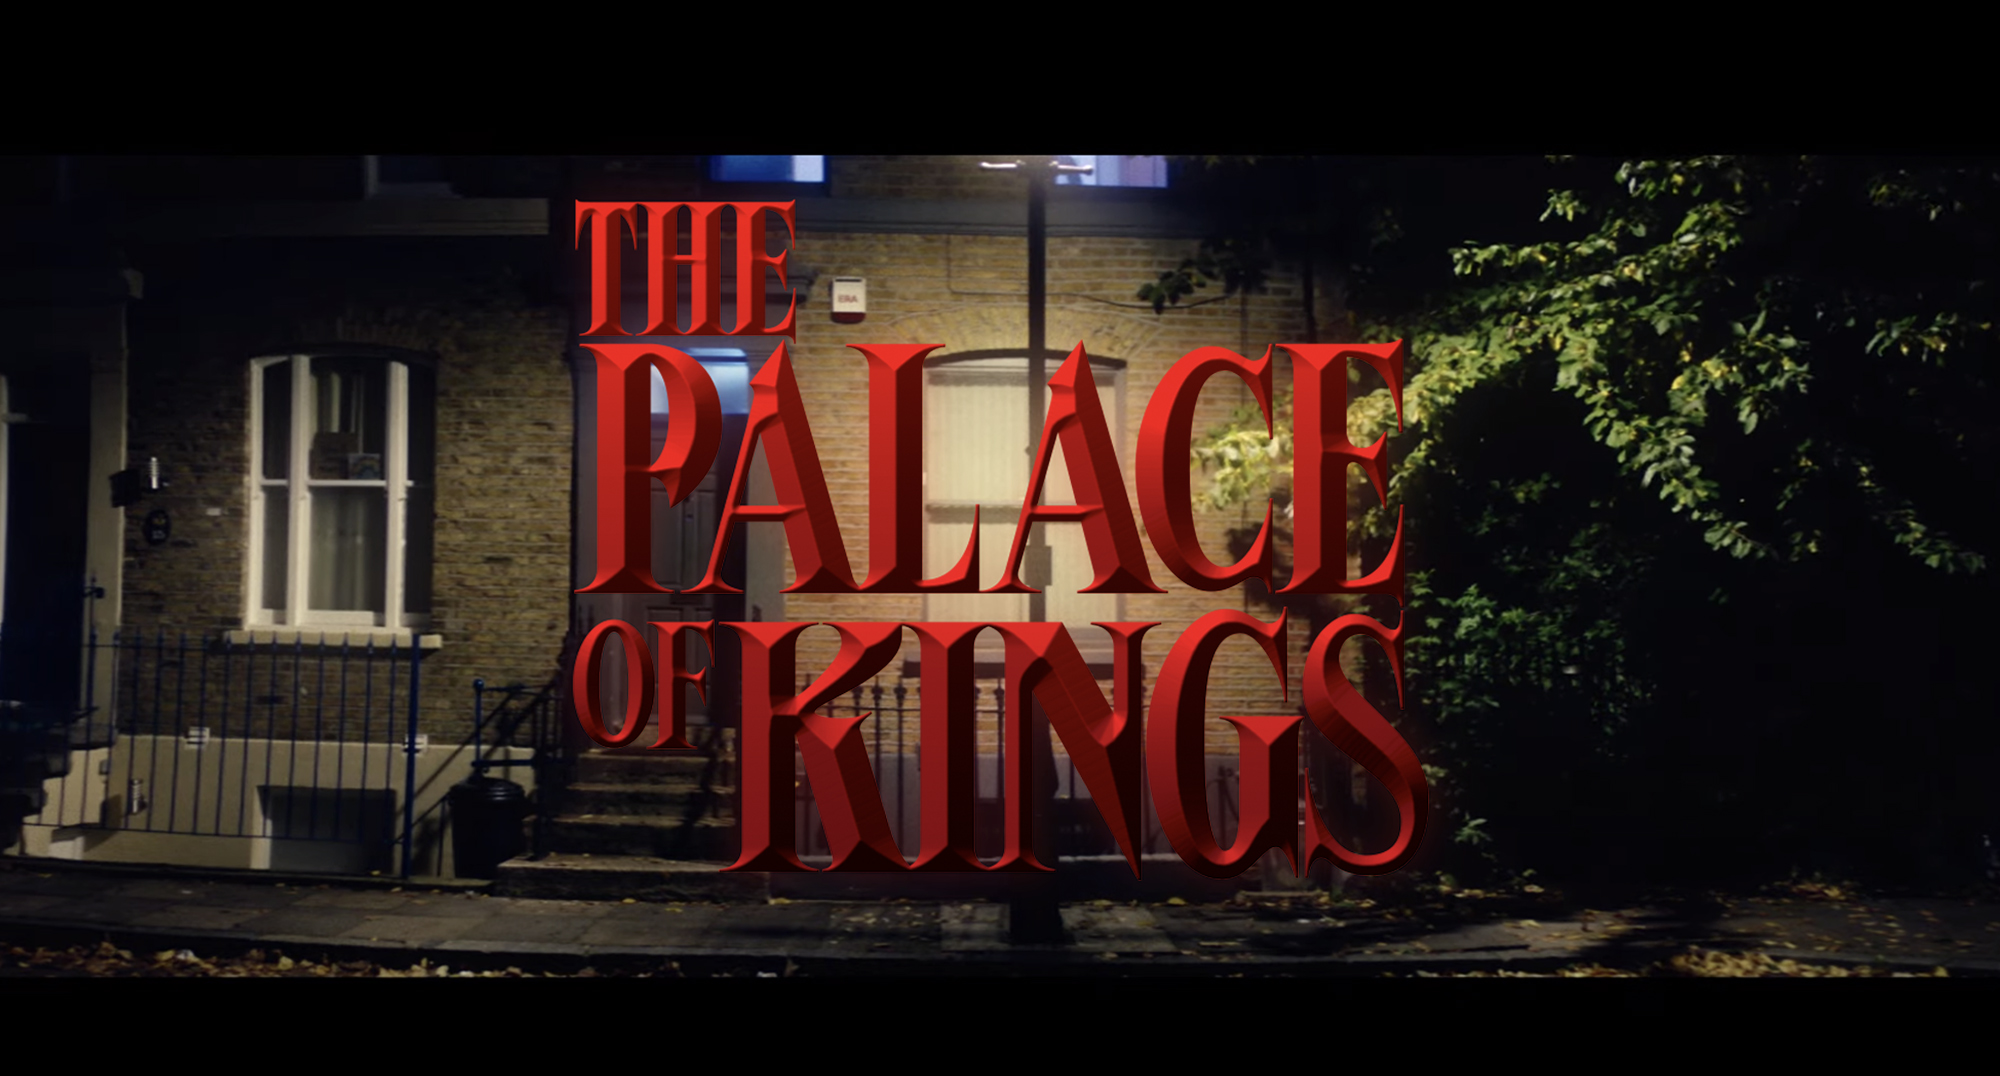 Cover image: The Palace of Kings - GucciFest